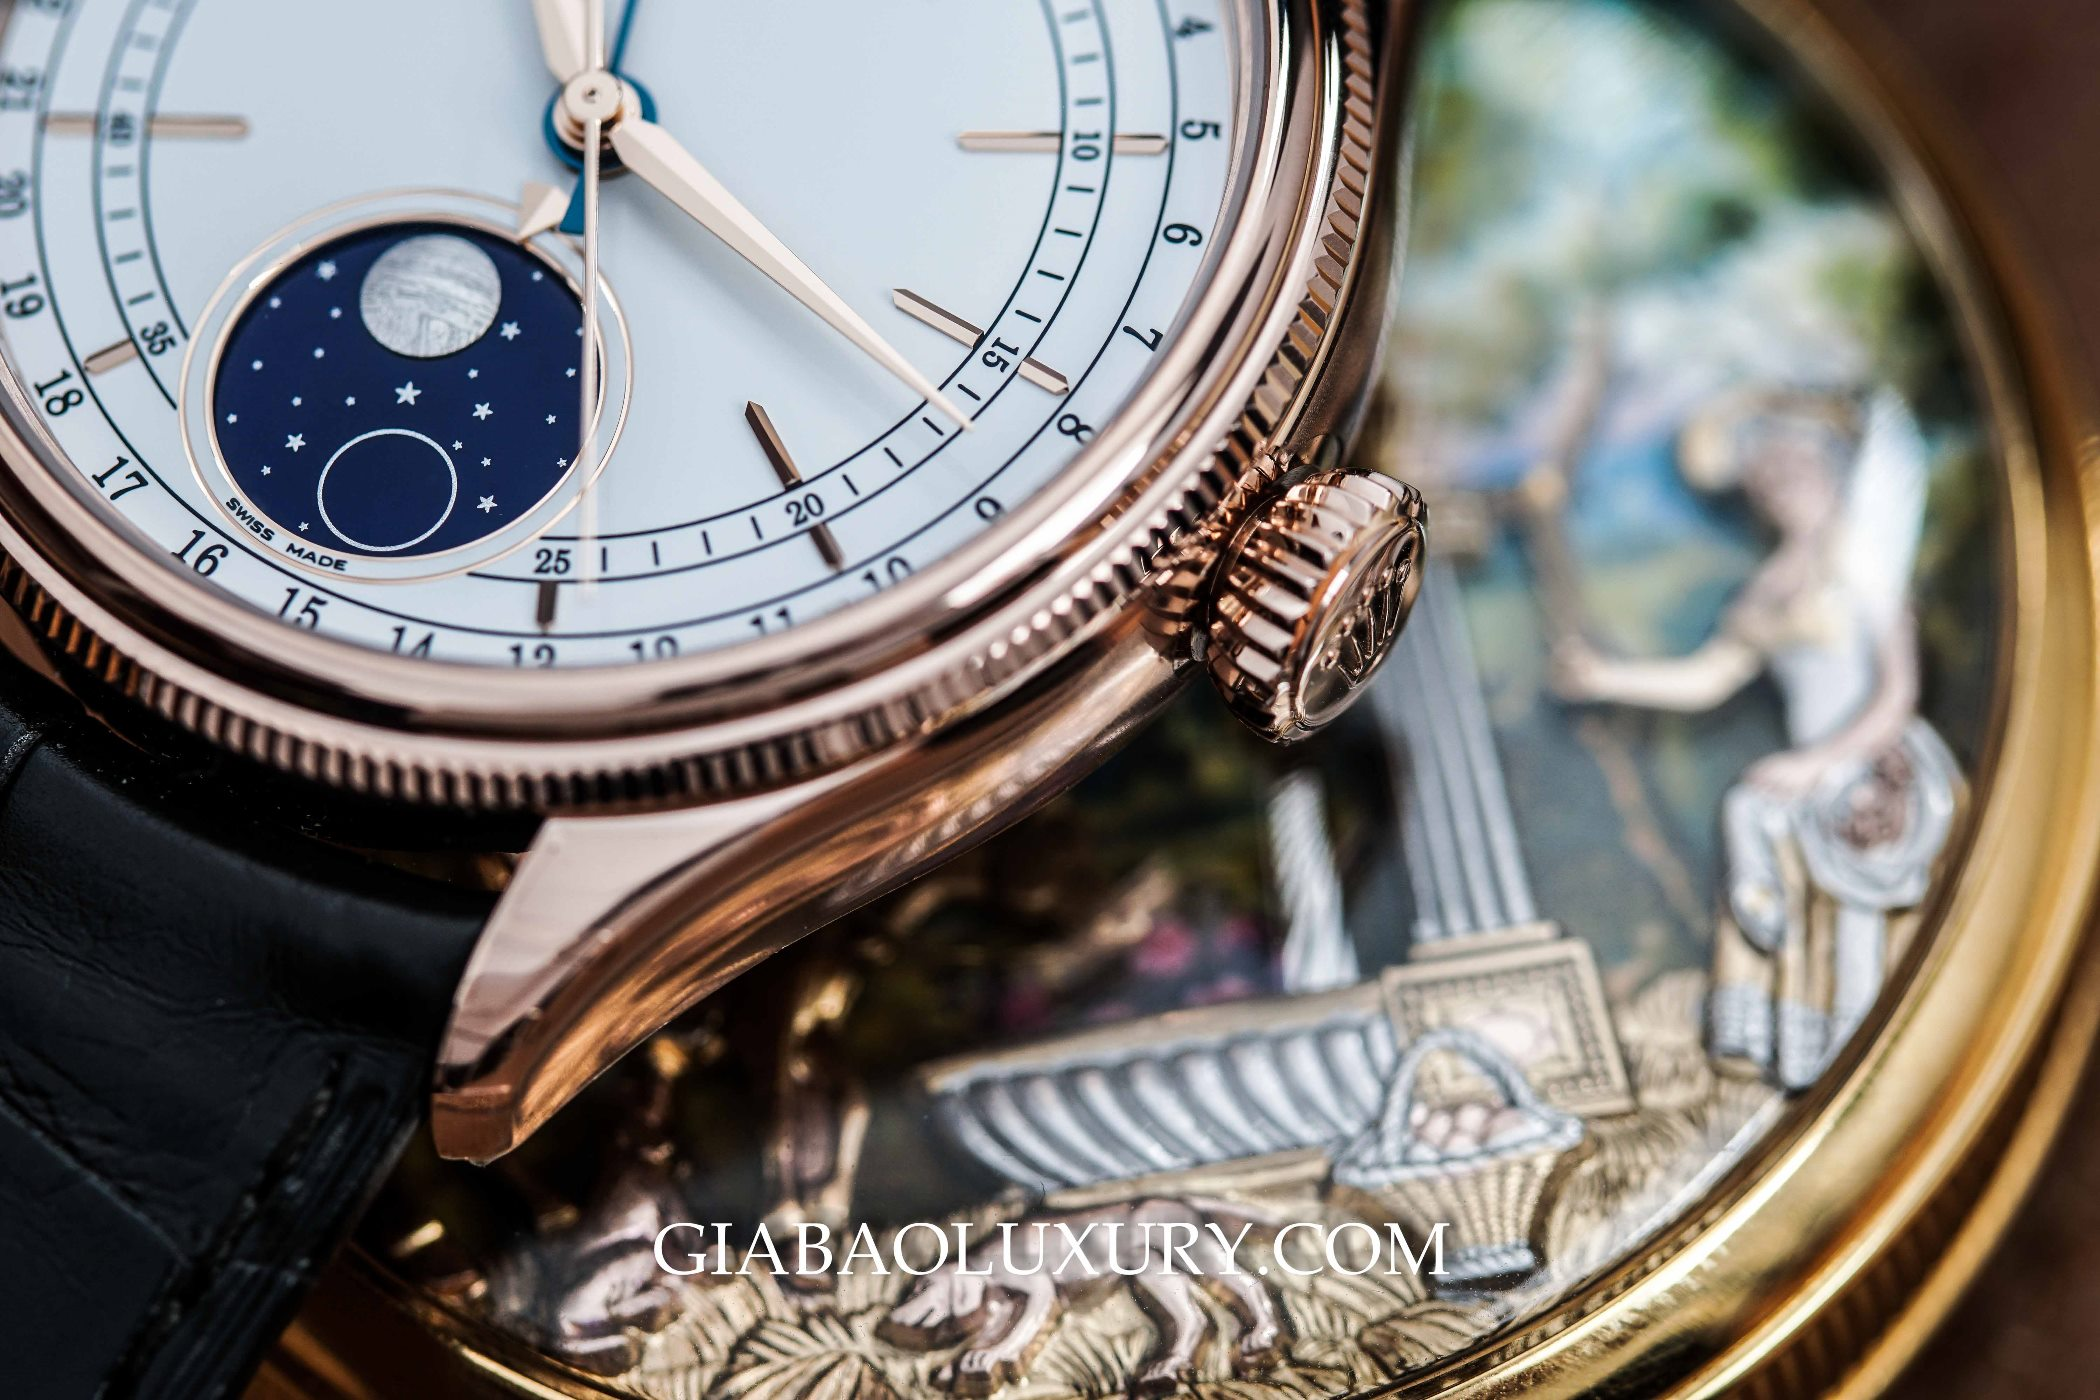 Review đồng hồ Rolex Cellini Moonphase 50535